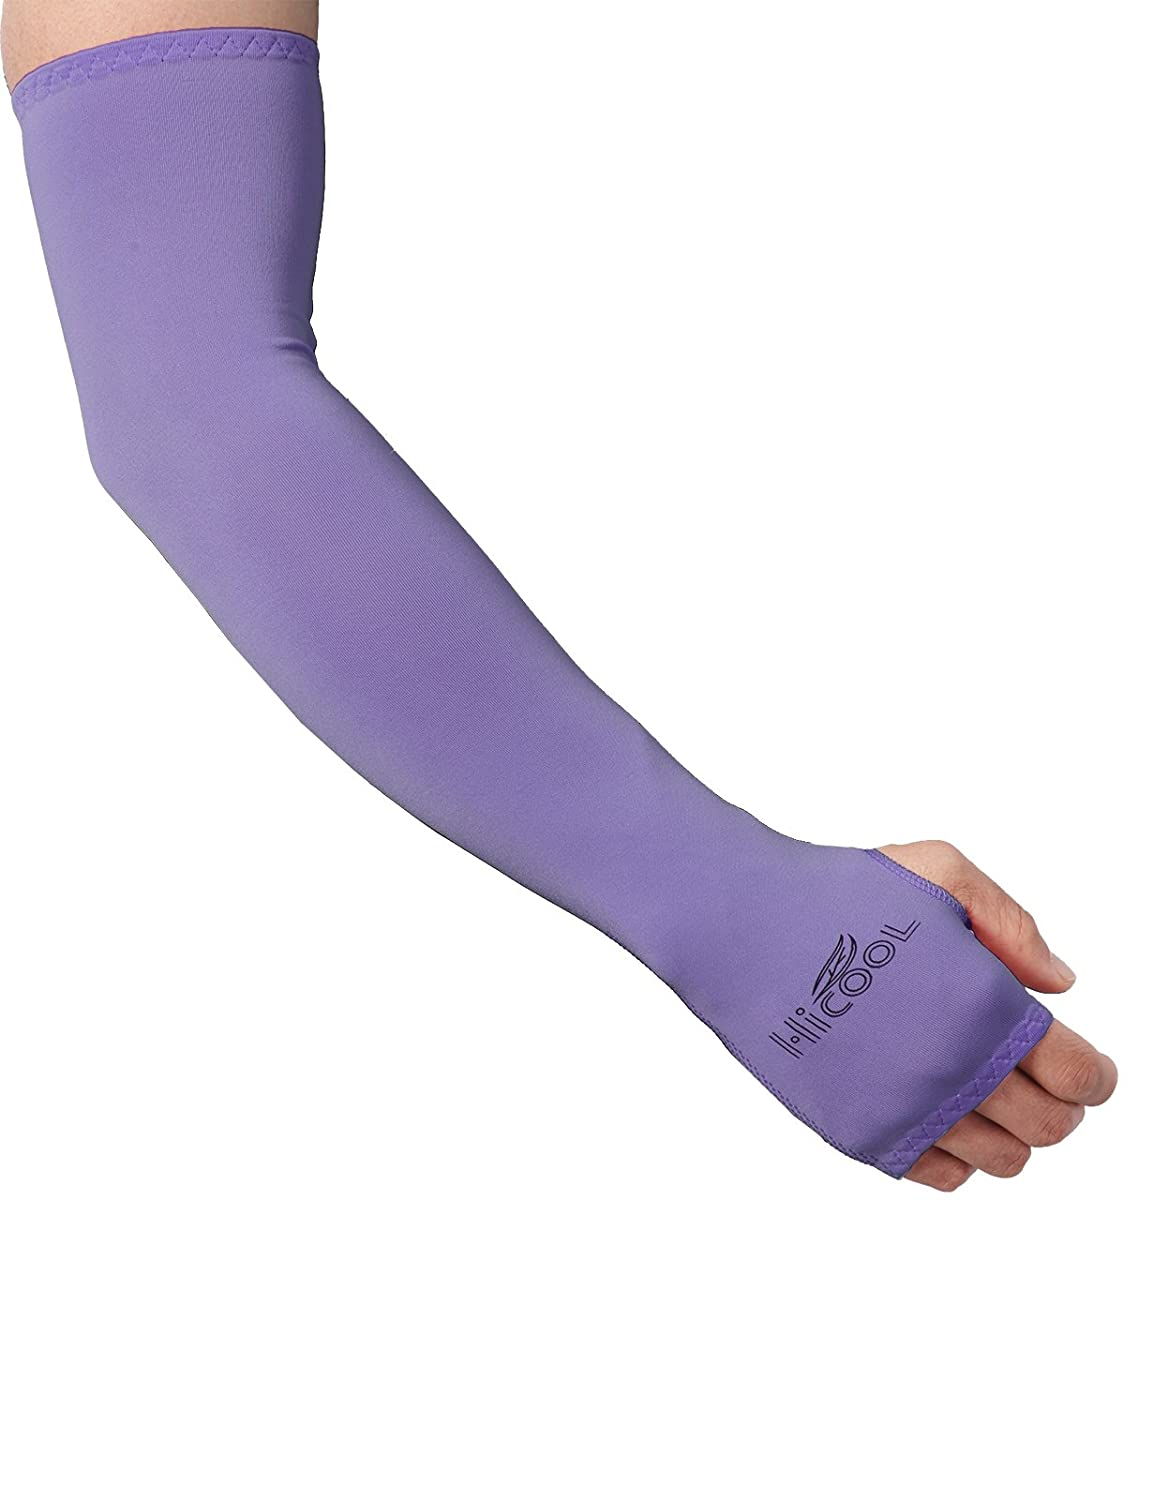 Cosynook UV Protection Cooling Arm Sleeves -Long Sun Sleeves for Men & Women.